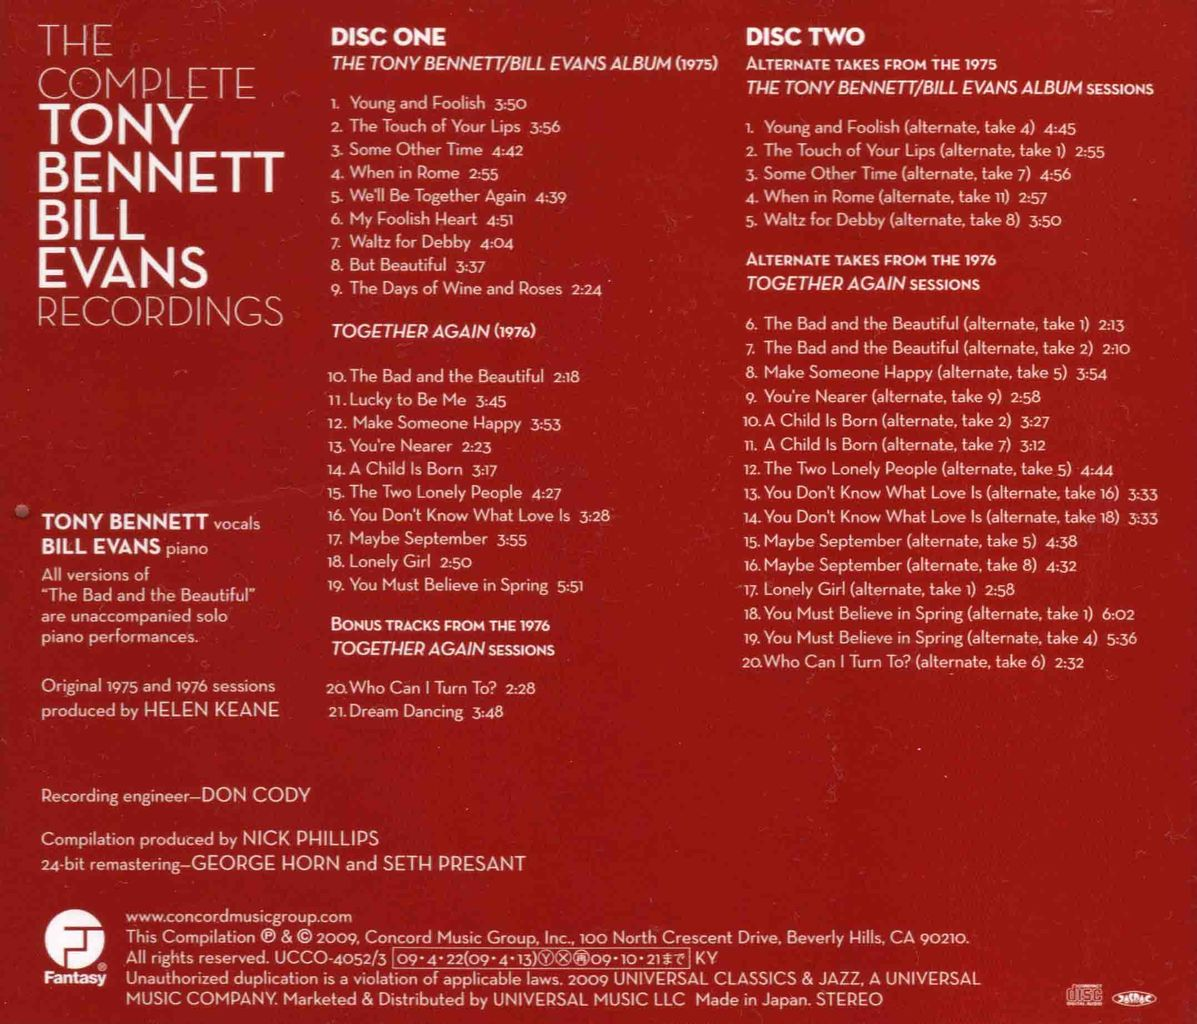 THE COMPLETE TONY BENNETT/BILL EVANS RECORDINGS-2